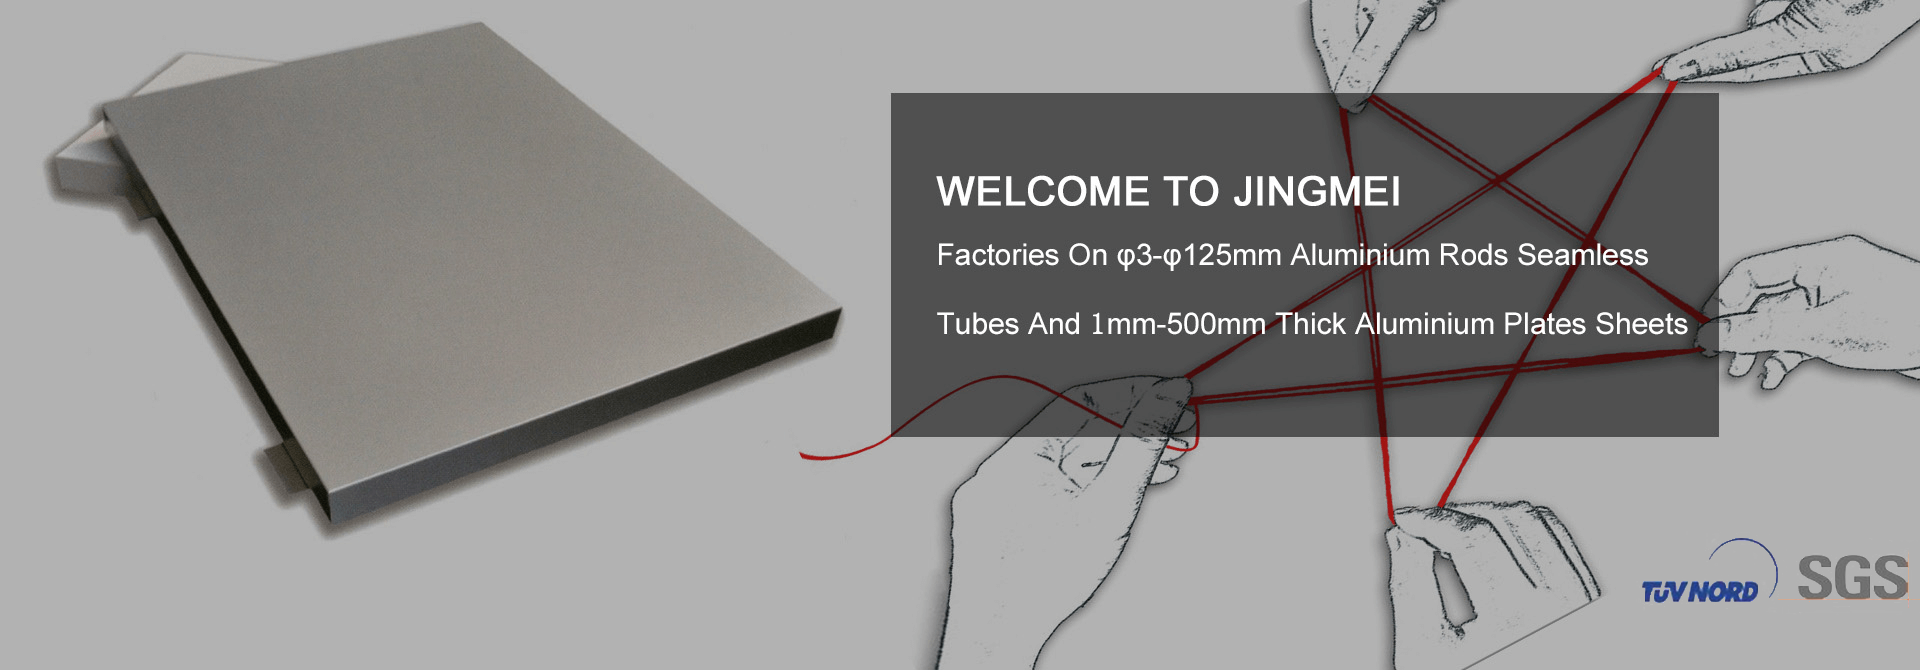 Welcome to Jingmei, Factories On 3φ-125φmm Aluminium Rods Seamless Tubes And 1mm-500mm Thick Aluminium Plates Sheets.